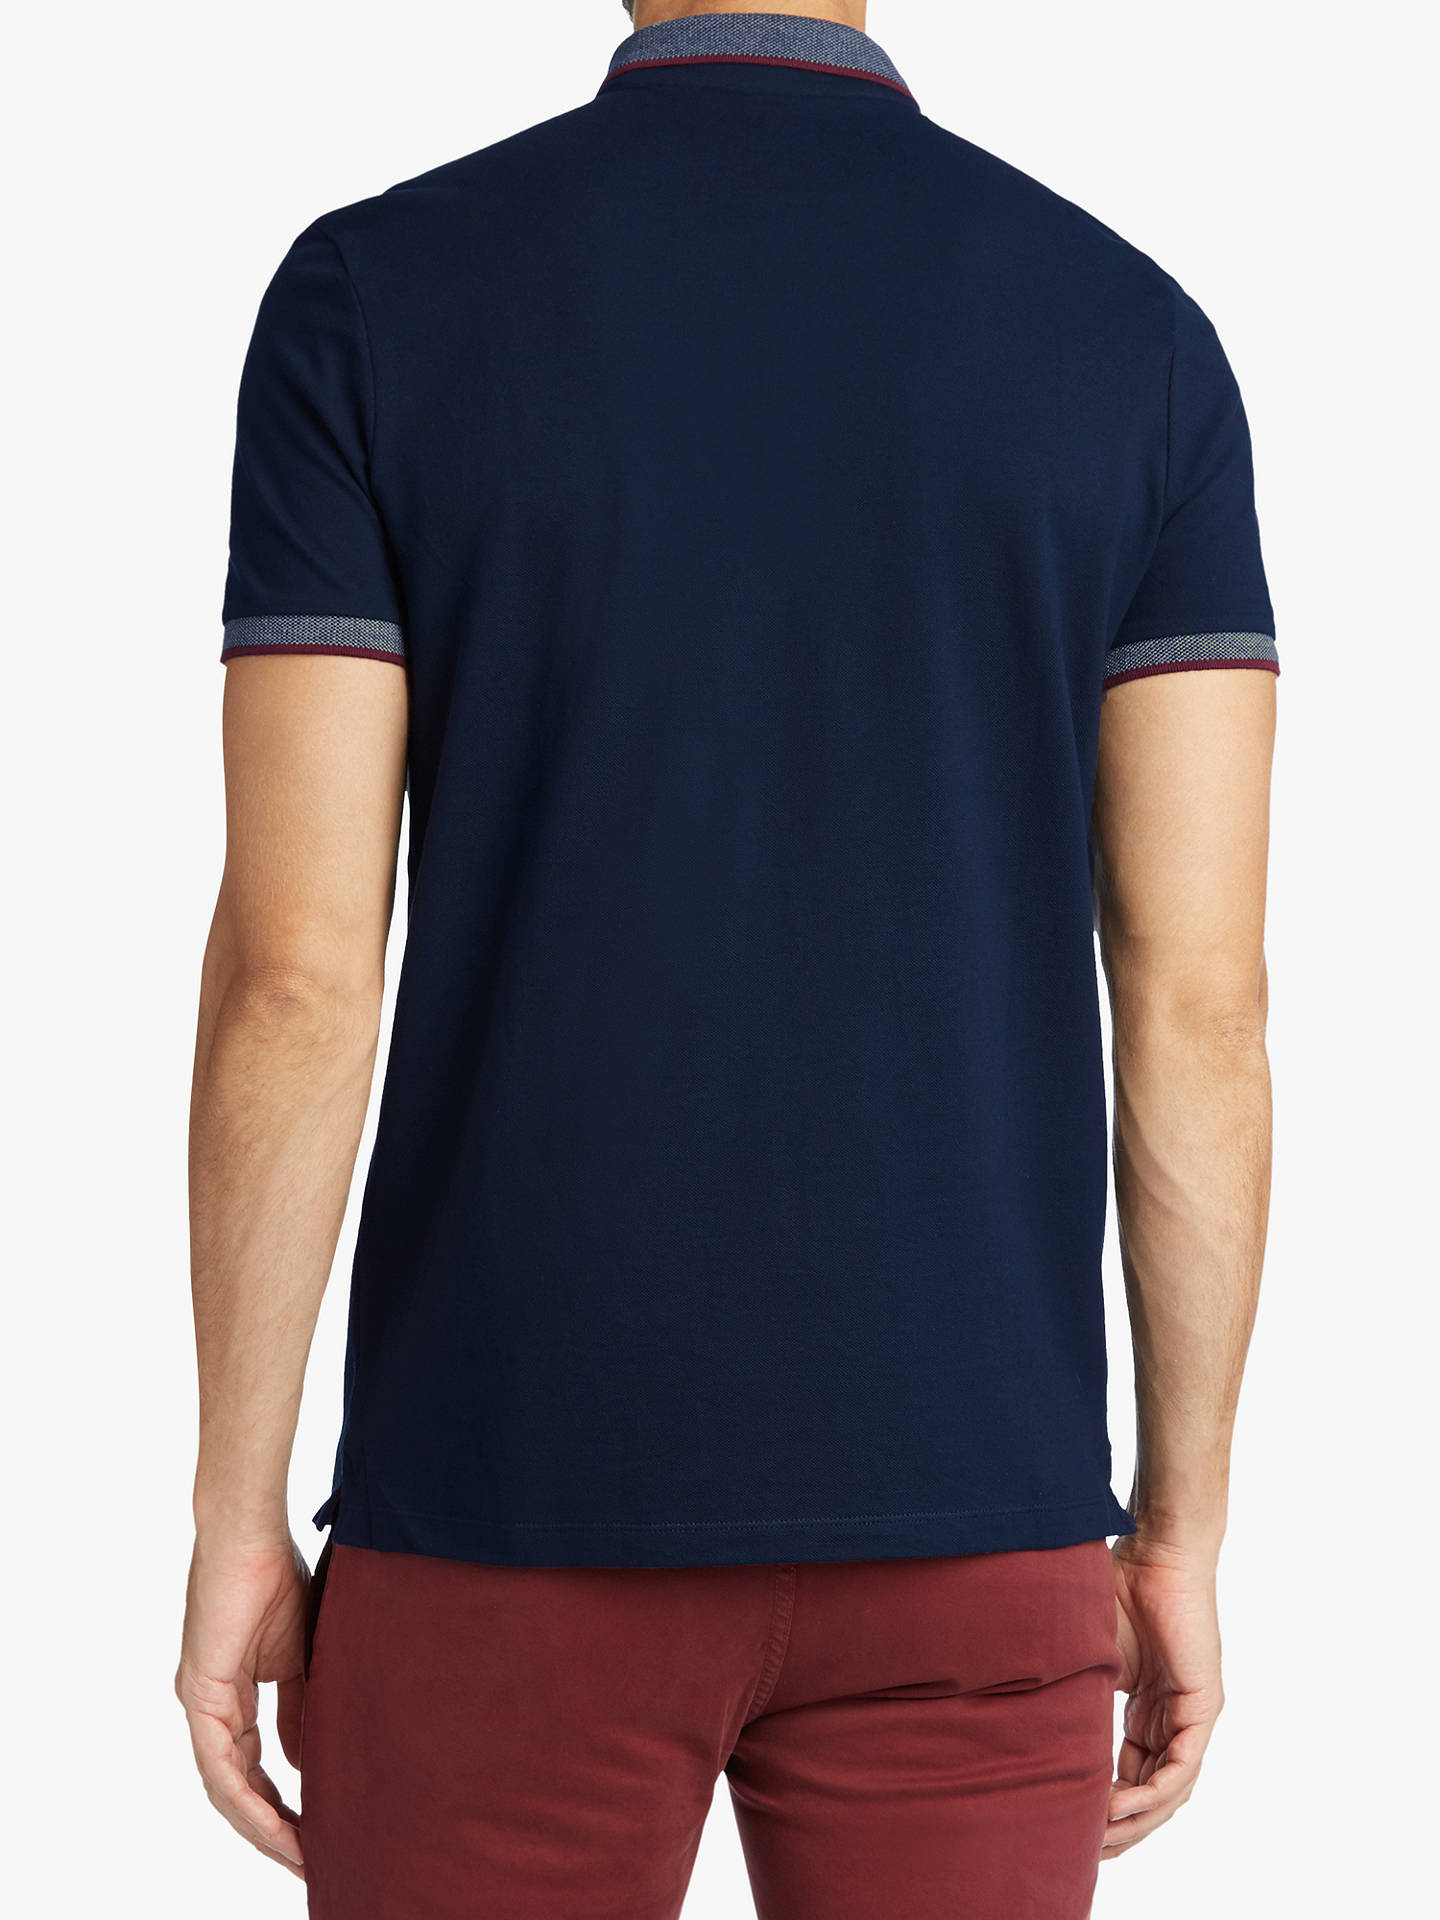 BuyBOSS Porch Polo Top, Dark Blue, XL Online at johnlewis.com